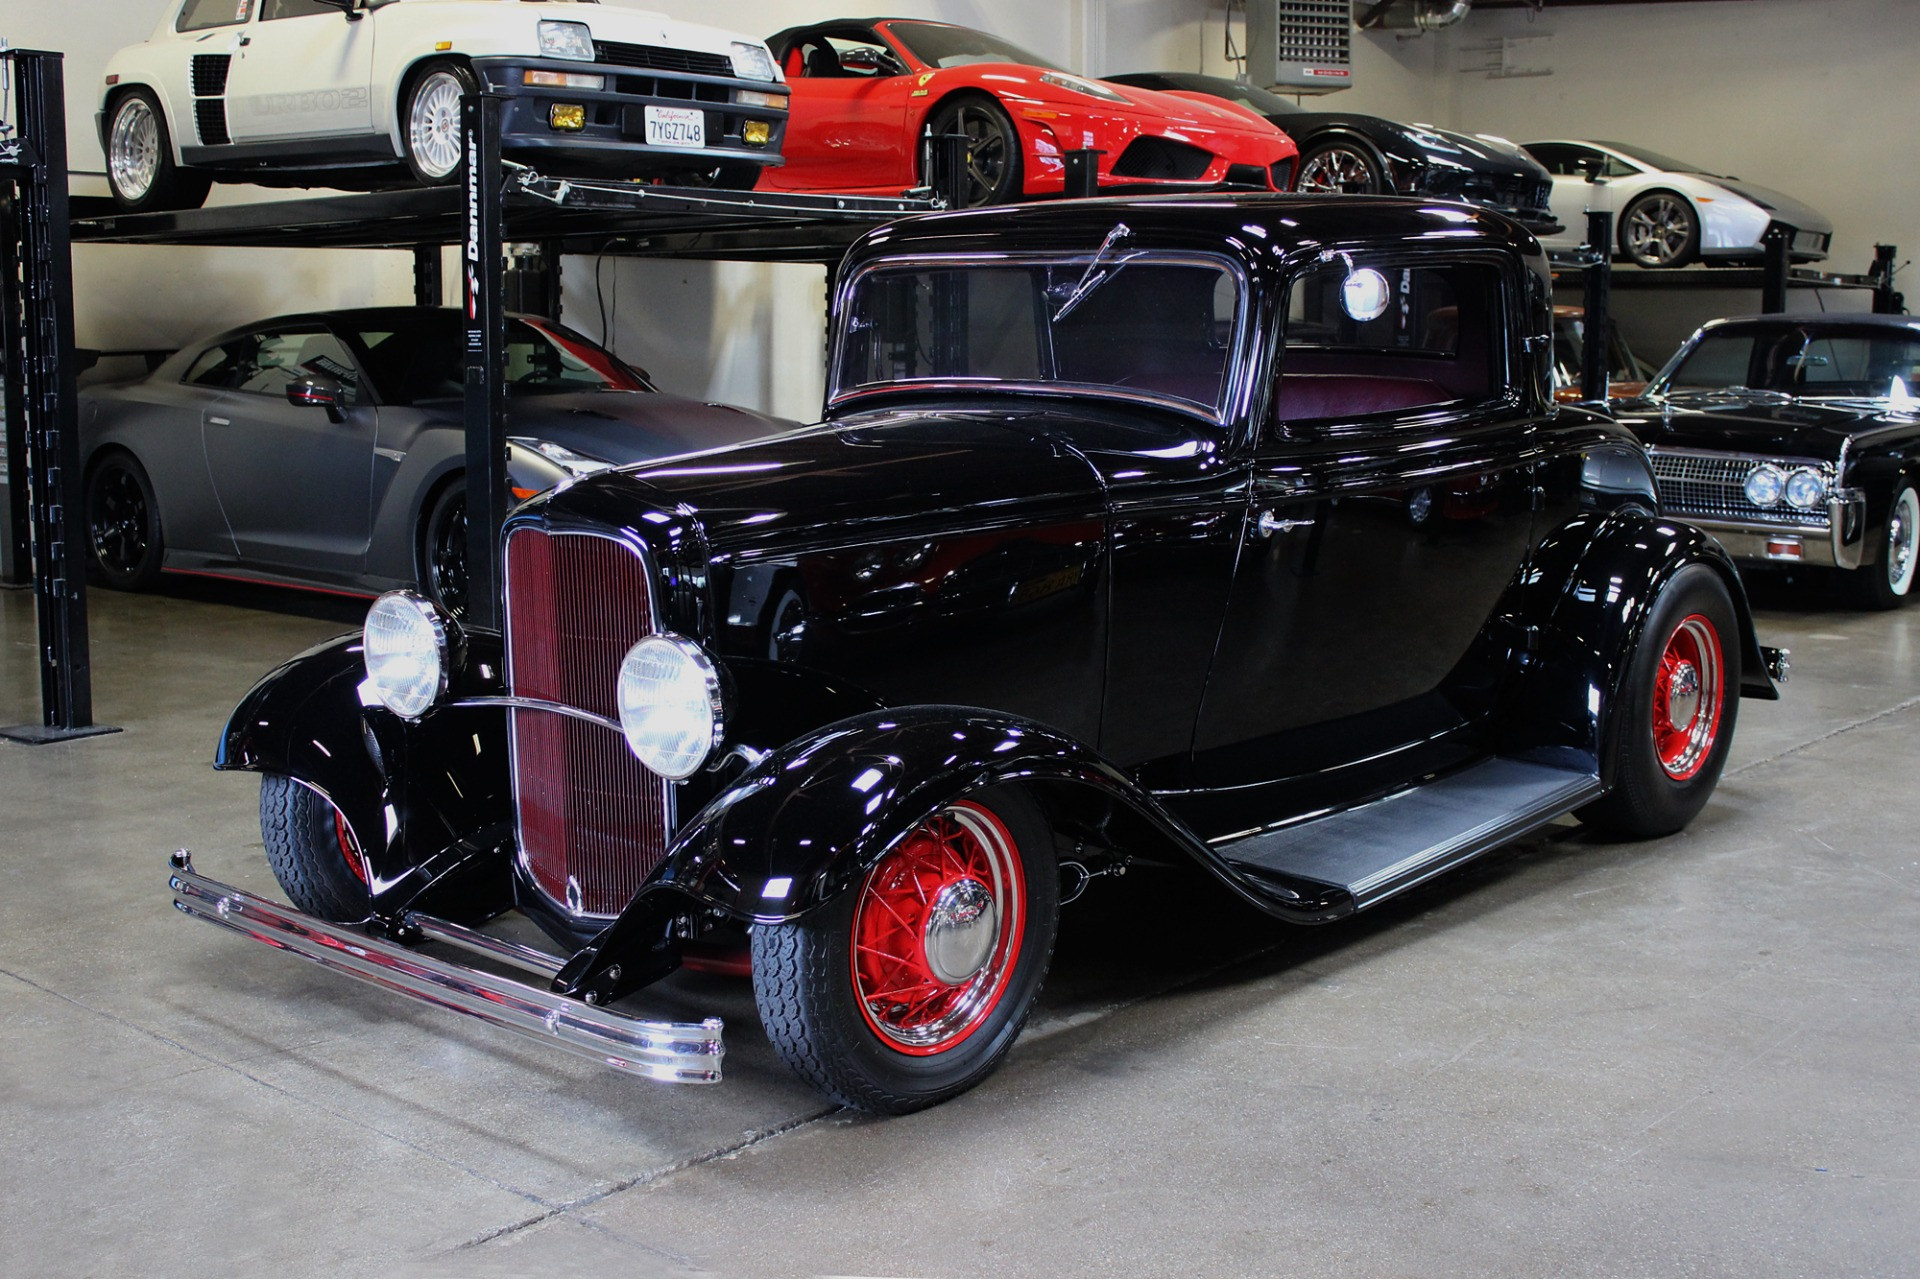 Used 1932 Ford Coupe Hot Rod For Sale 99 995 San Francisco Sports Cars Stock C202010